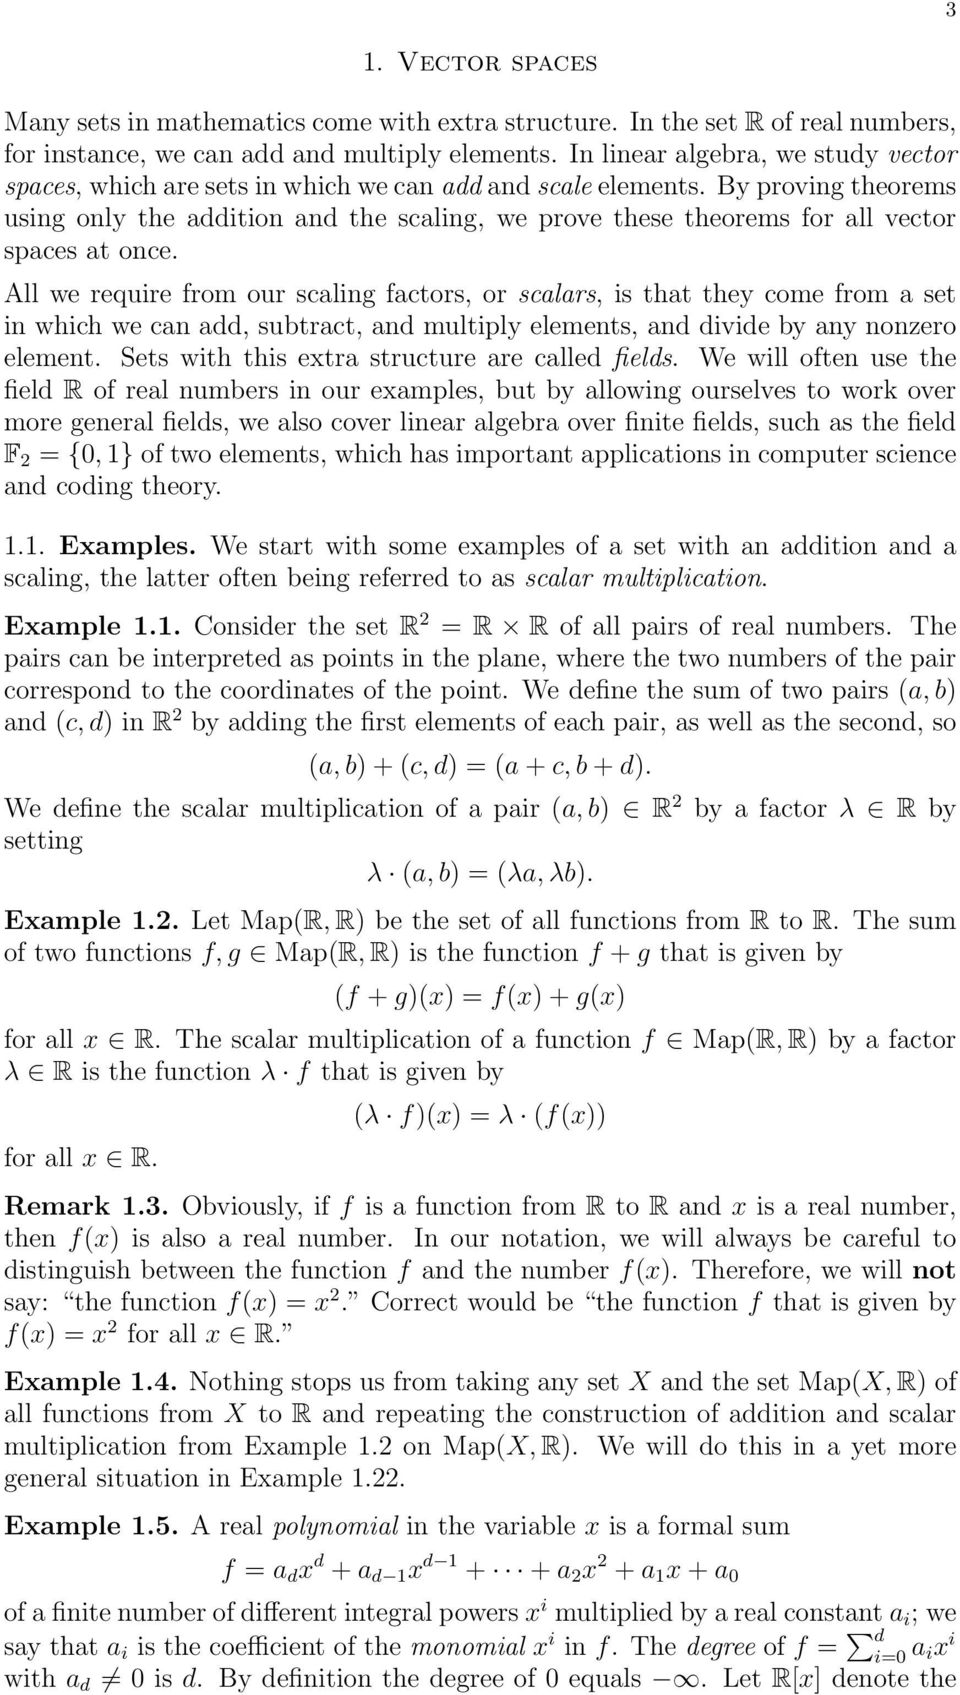 By proving theorems using only the addition and the scaling, we prove these theorems for all vector spaces at once.